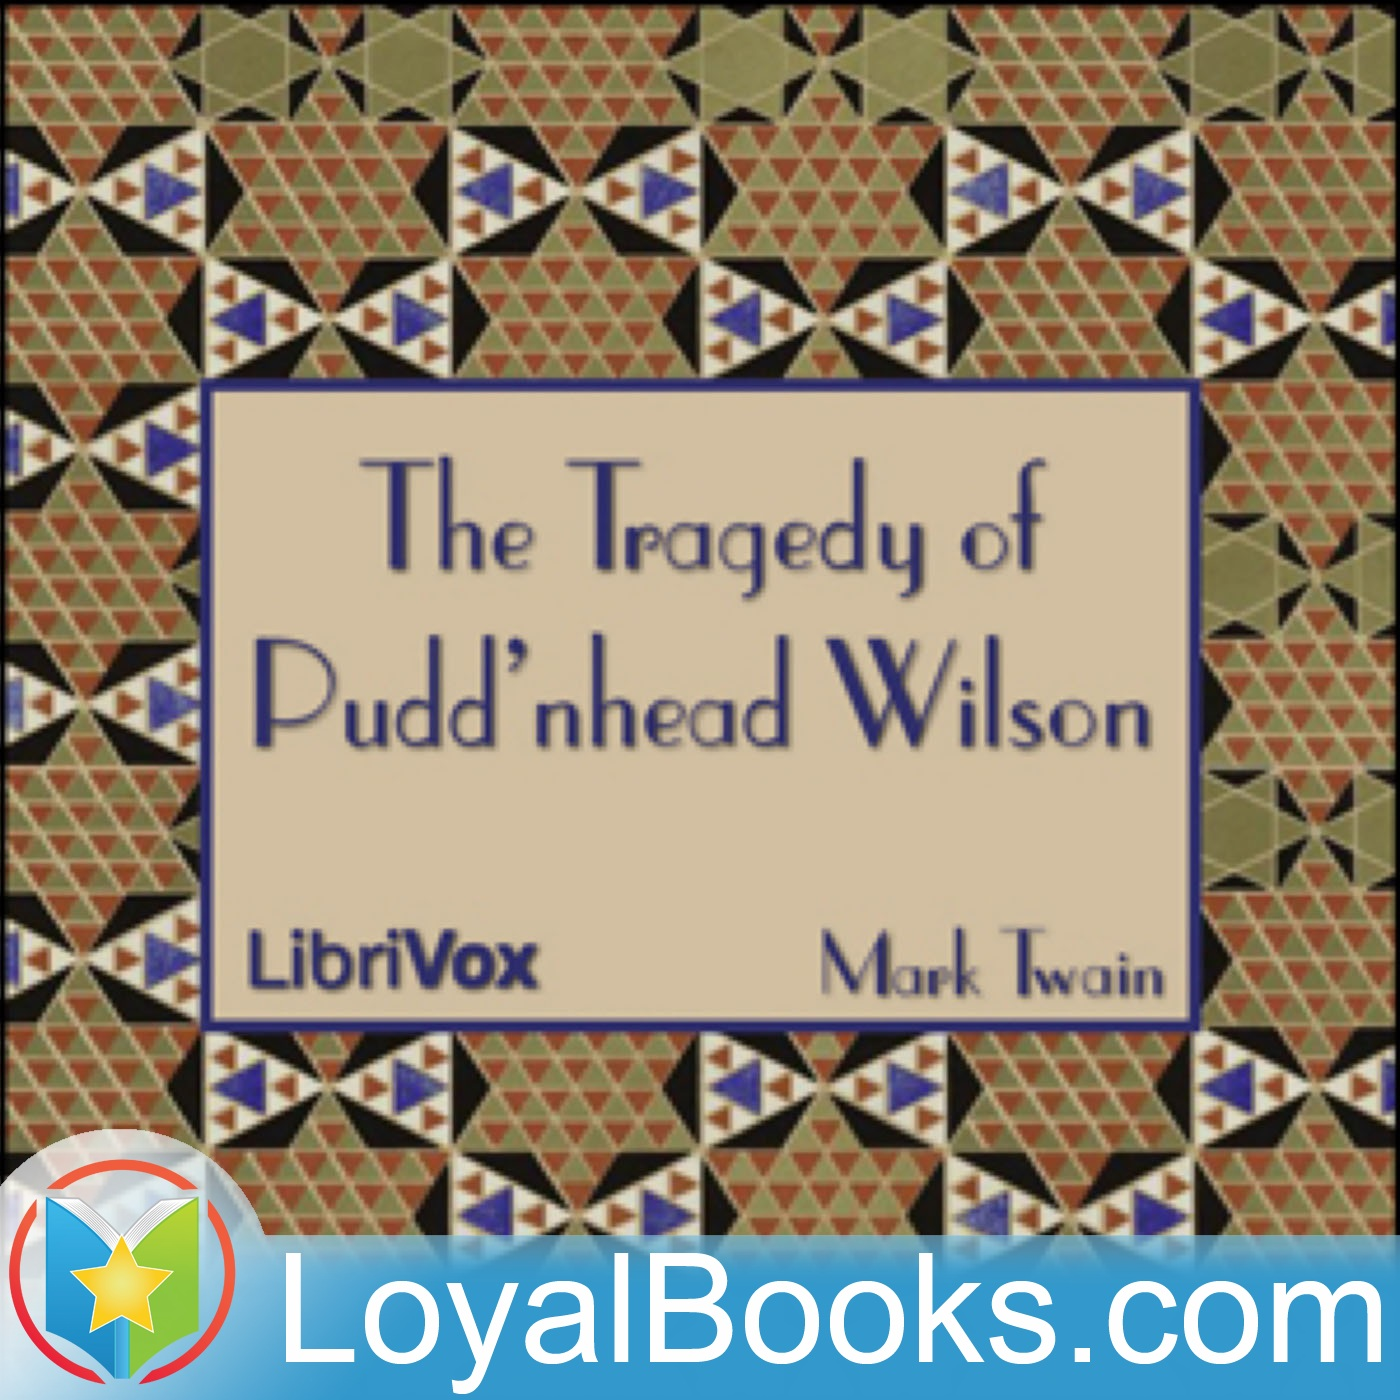 the tragedy of pudd nhead wilson Pudd'nhead wilson (1894) is a novel by american writer mark twain its central  intrigue  full text at project gutenberg full text of pudd'nhead wilson the  tragedy of pudd'nhead wilson public domain audiobook at librivox pudd' nhead.